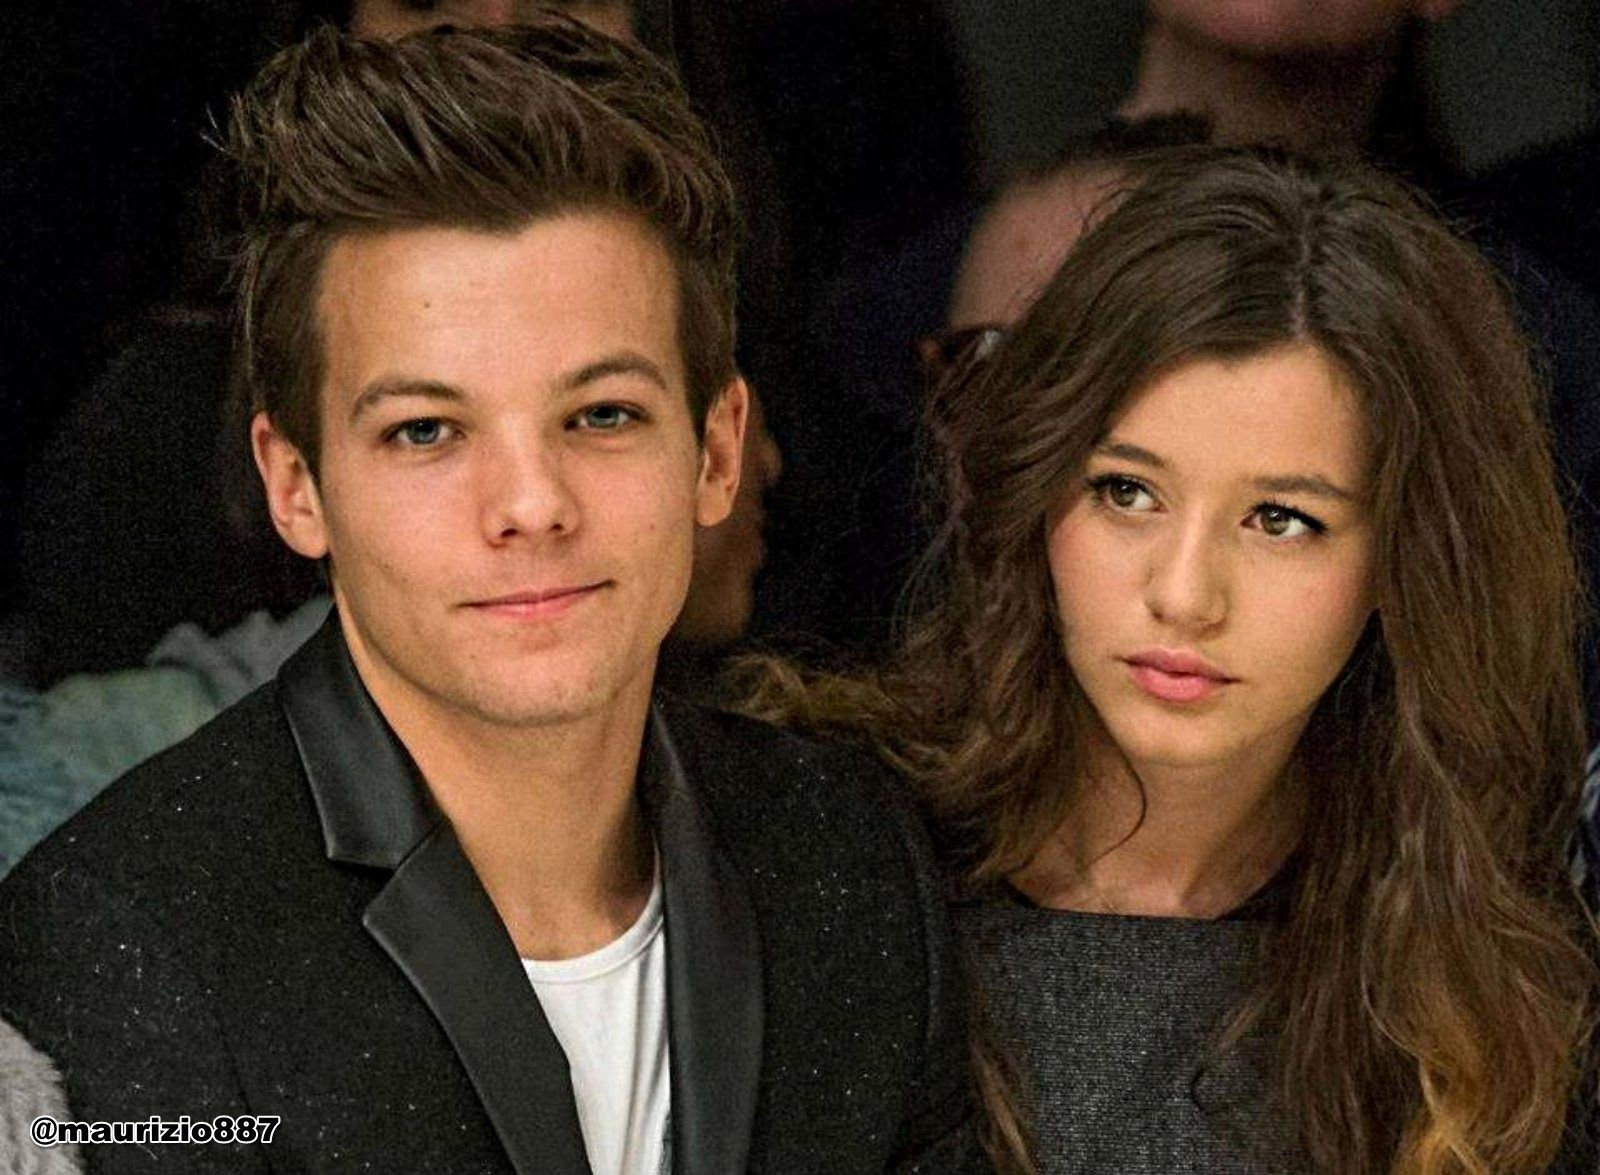 louis and eleanor | louis tommo | pinterest